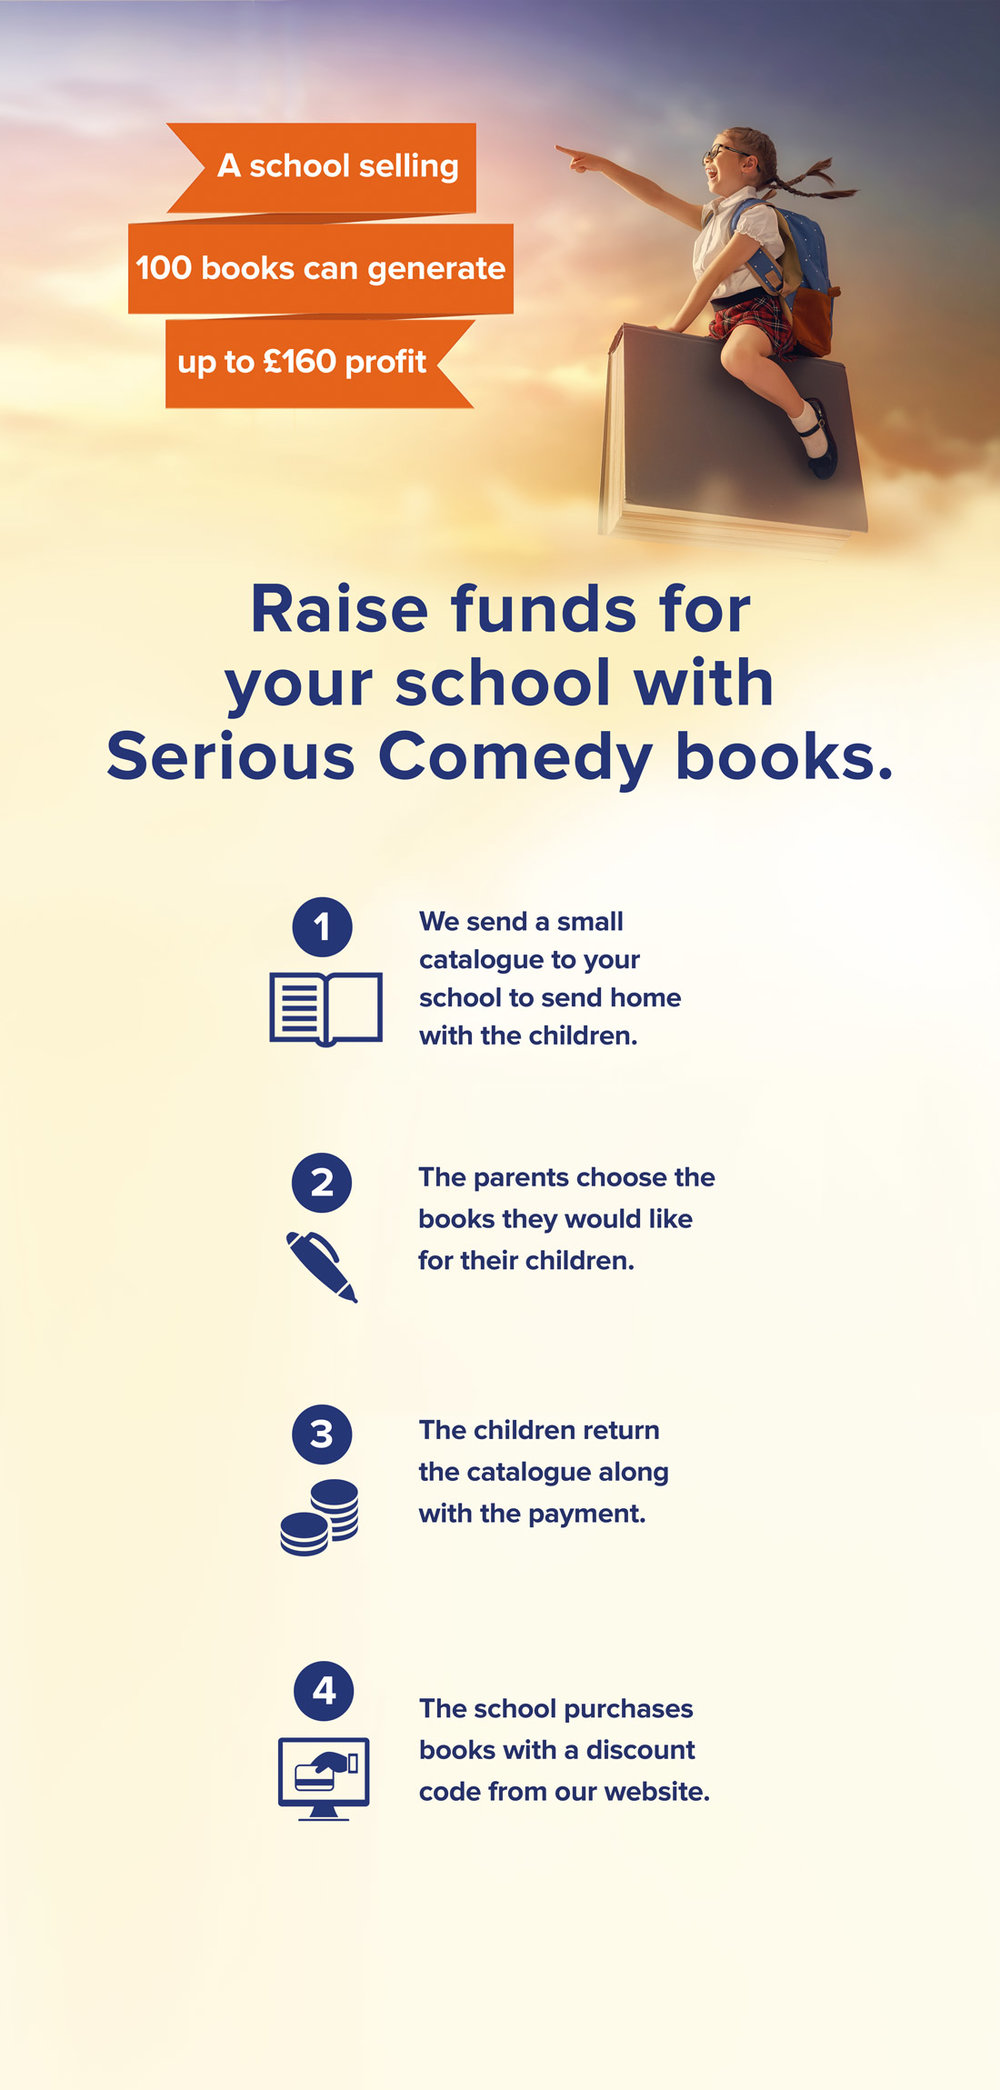 Books-funds-schools.jpg